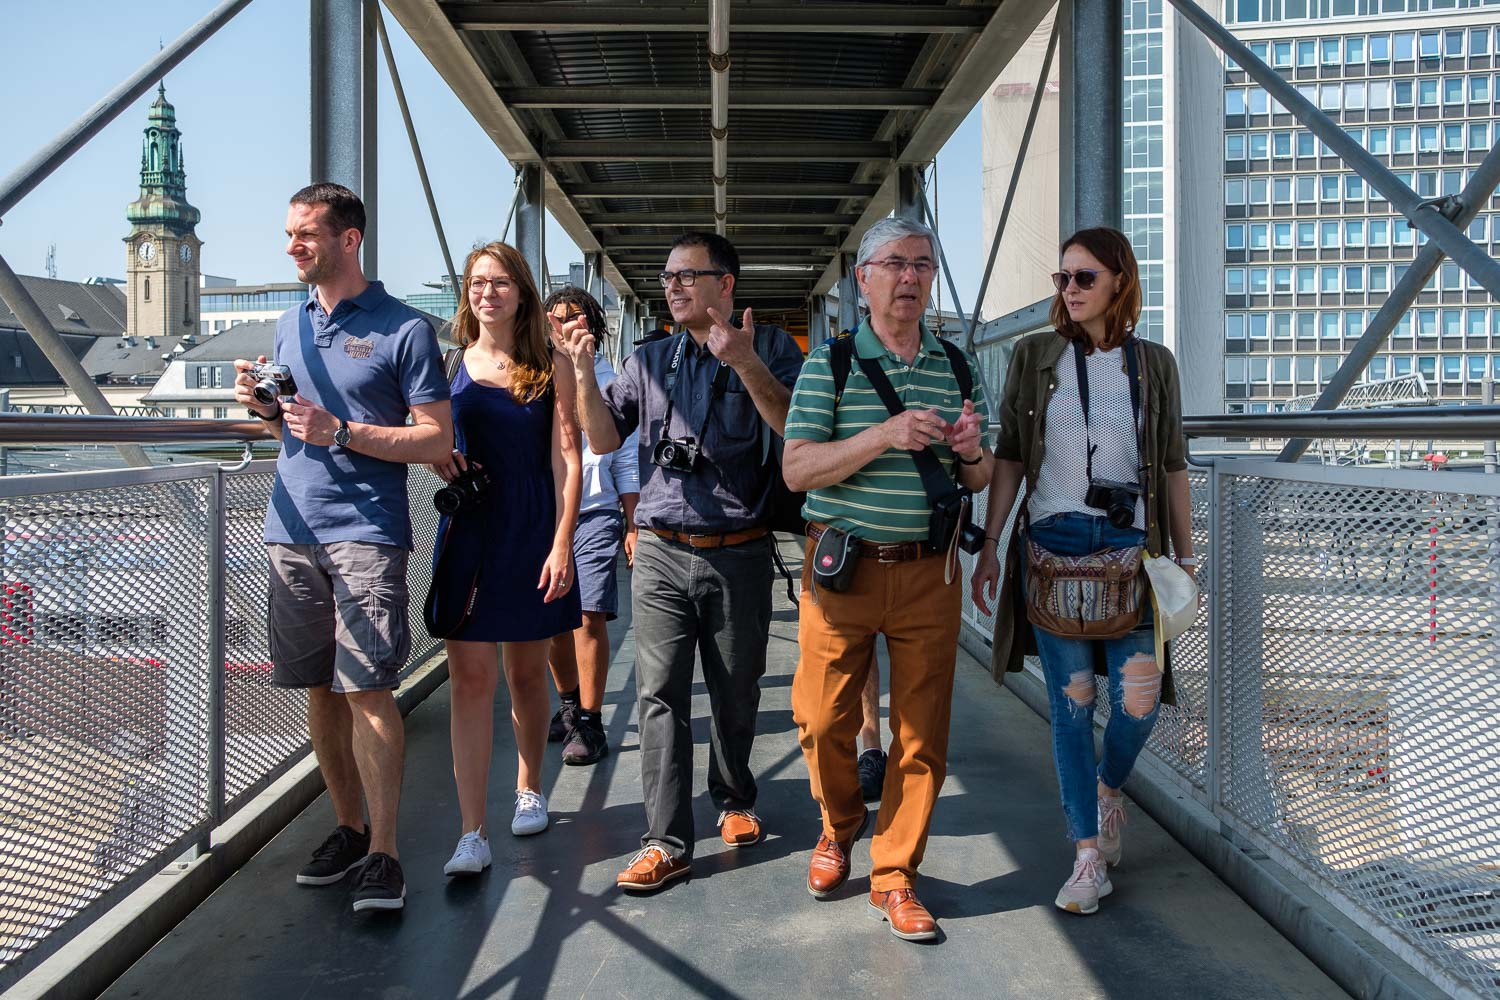 Luxembourg Street Photography Festival at Rotondes - Workshop with Paulo Lobo and Christophe Van Biesen - LSPF 2018 - Photography by Christophe Van Biesen - Luxembourg Landscape and Travel Photographer